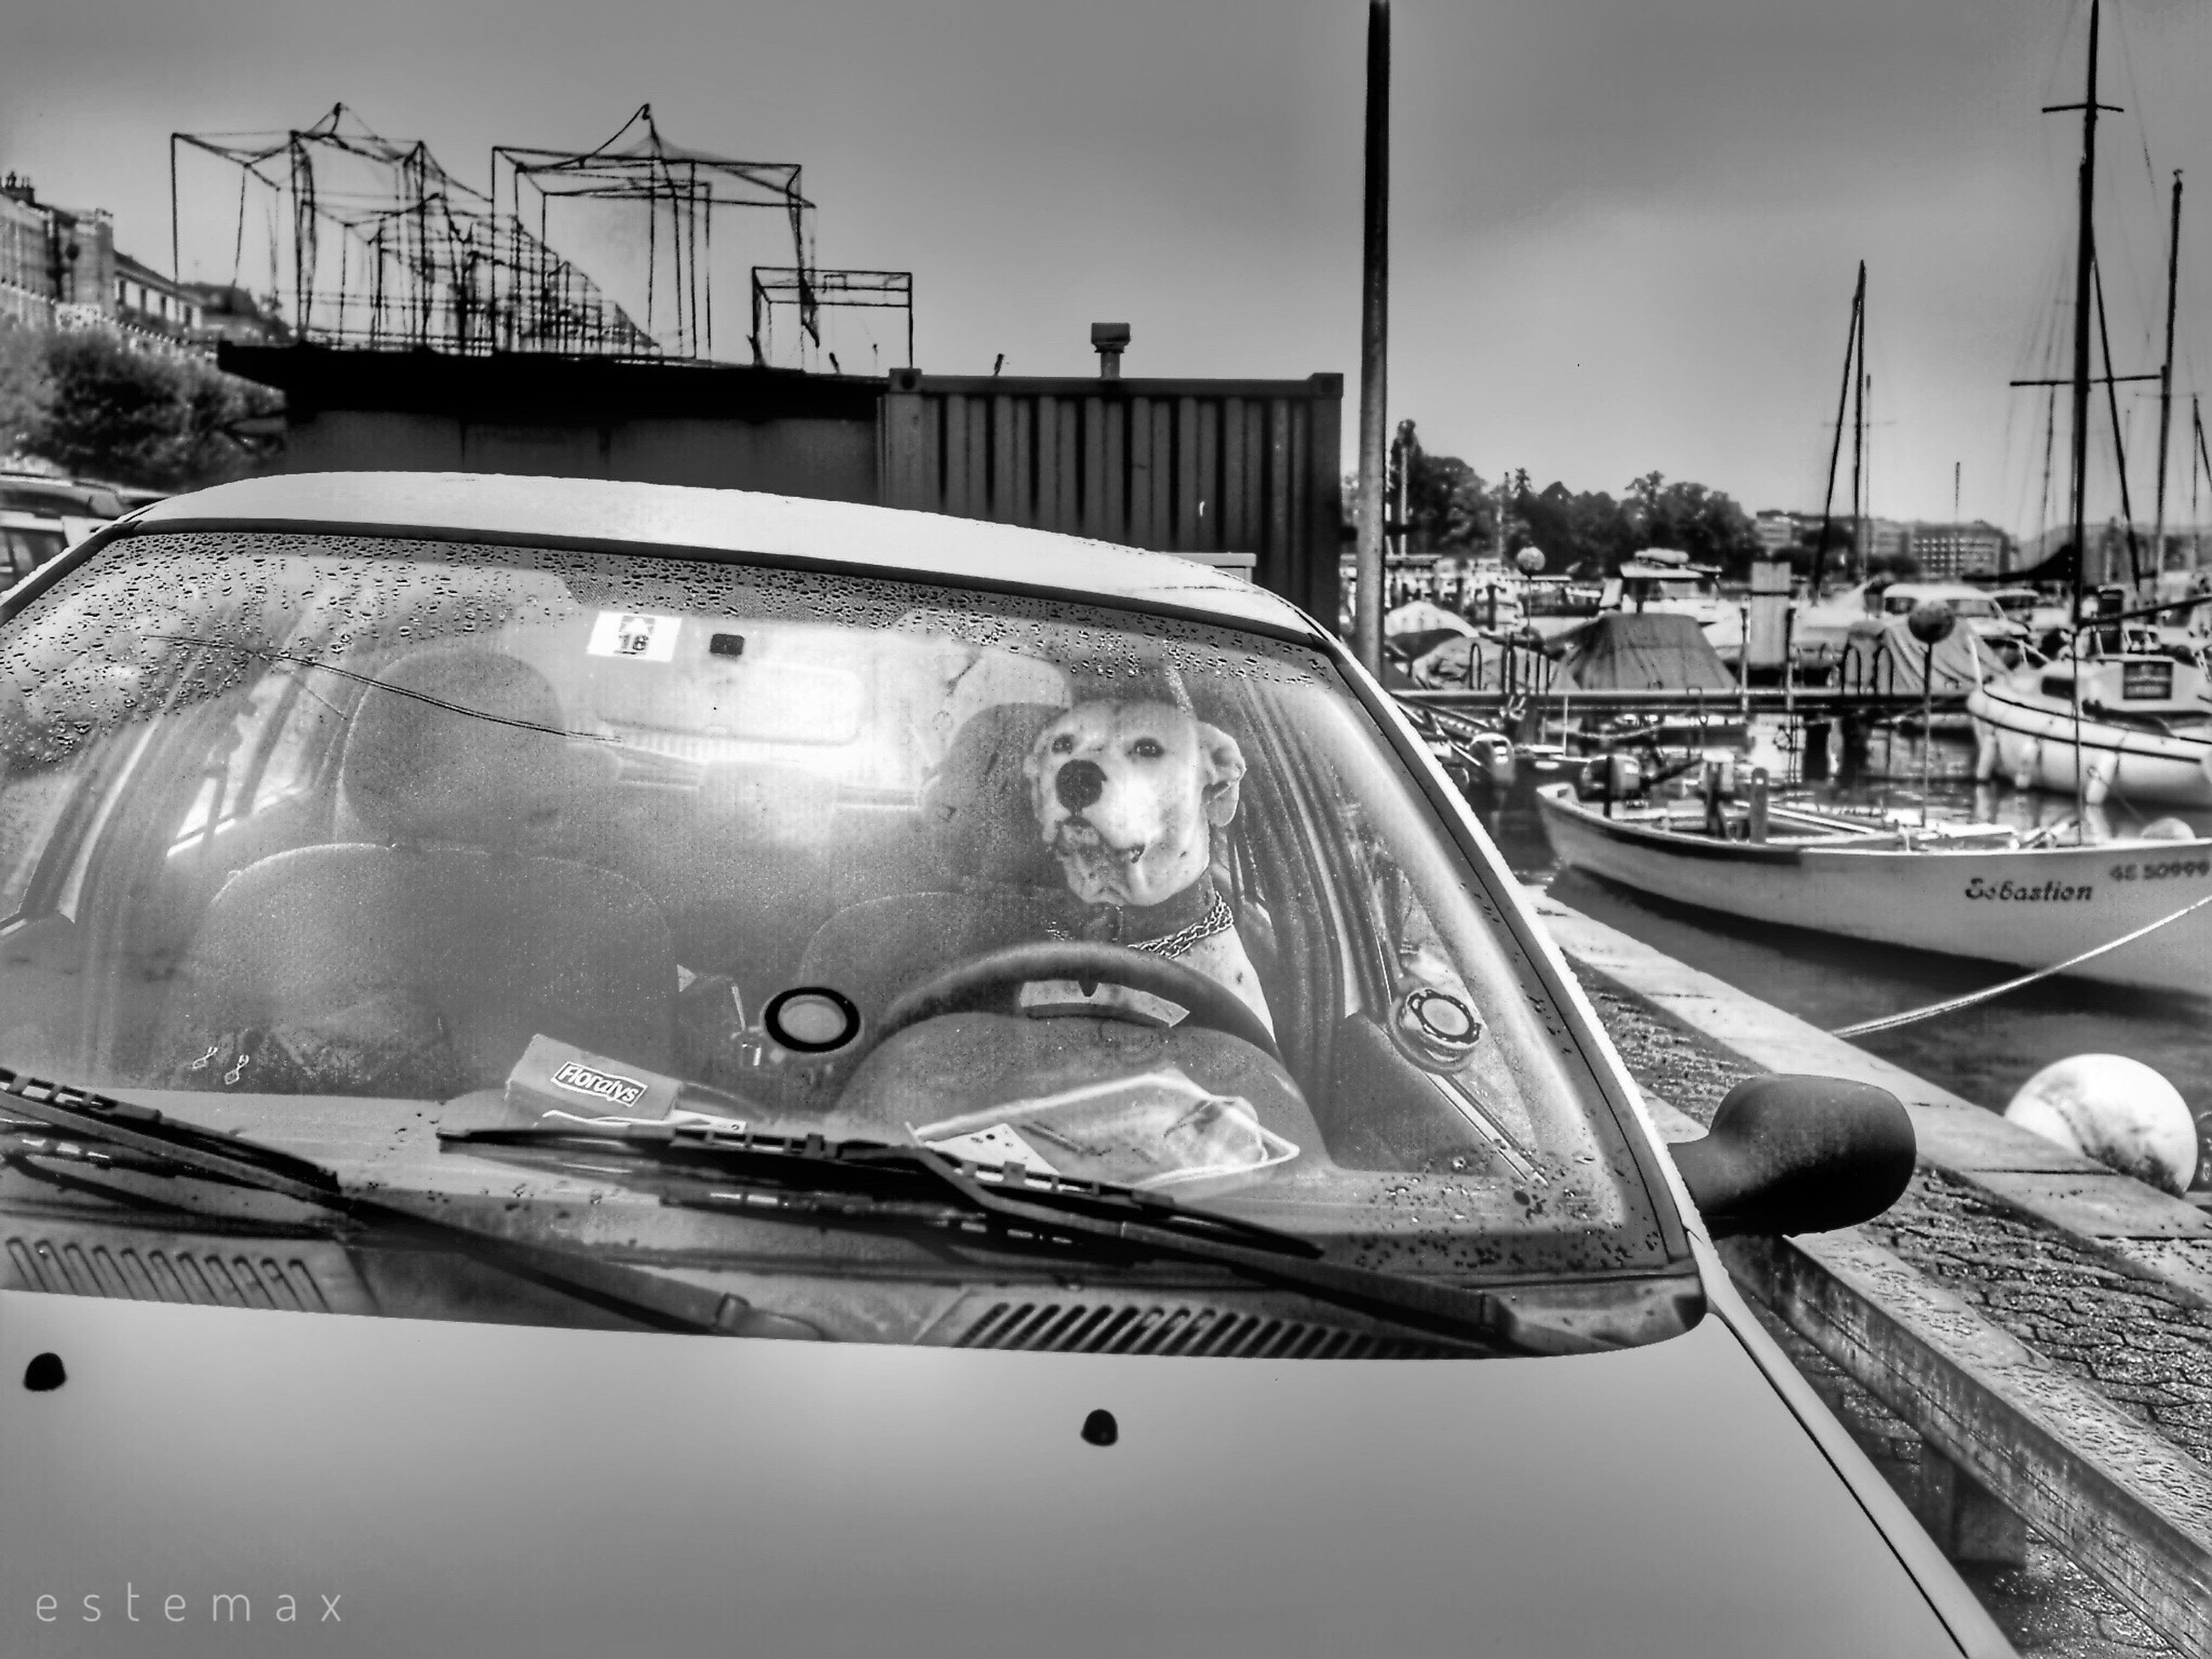 transportation, mode of transport, water, leisure activity, nautical vessel, day, outdoors, real people, sky, portrait, sea, one person, close-up, yacht, people